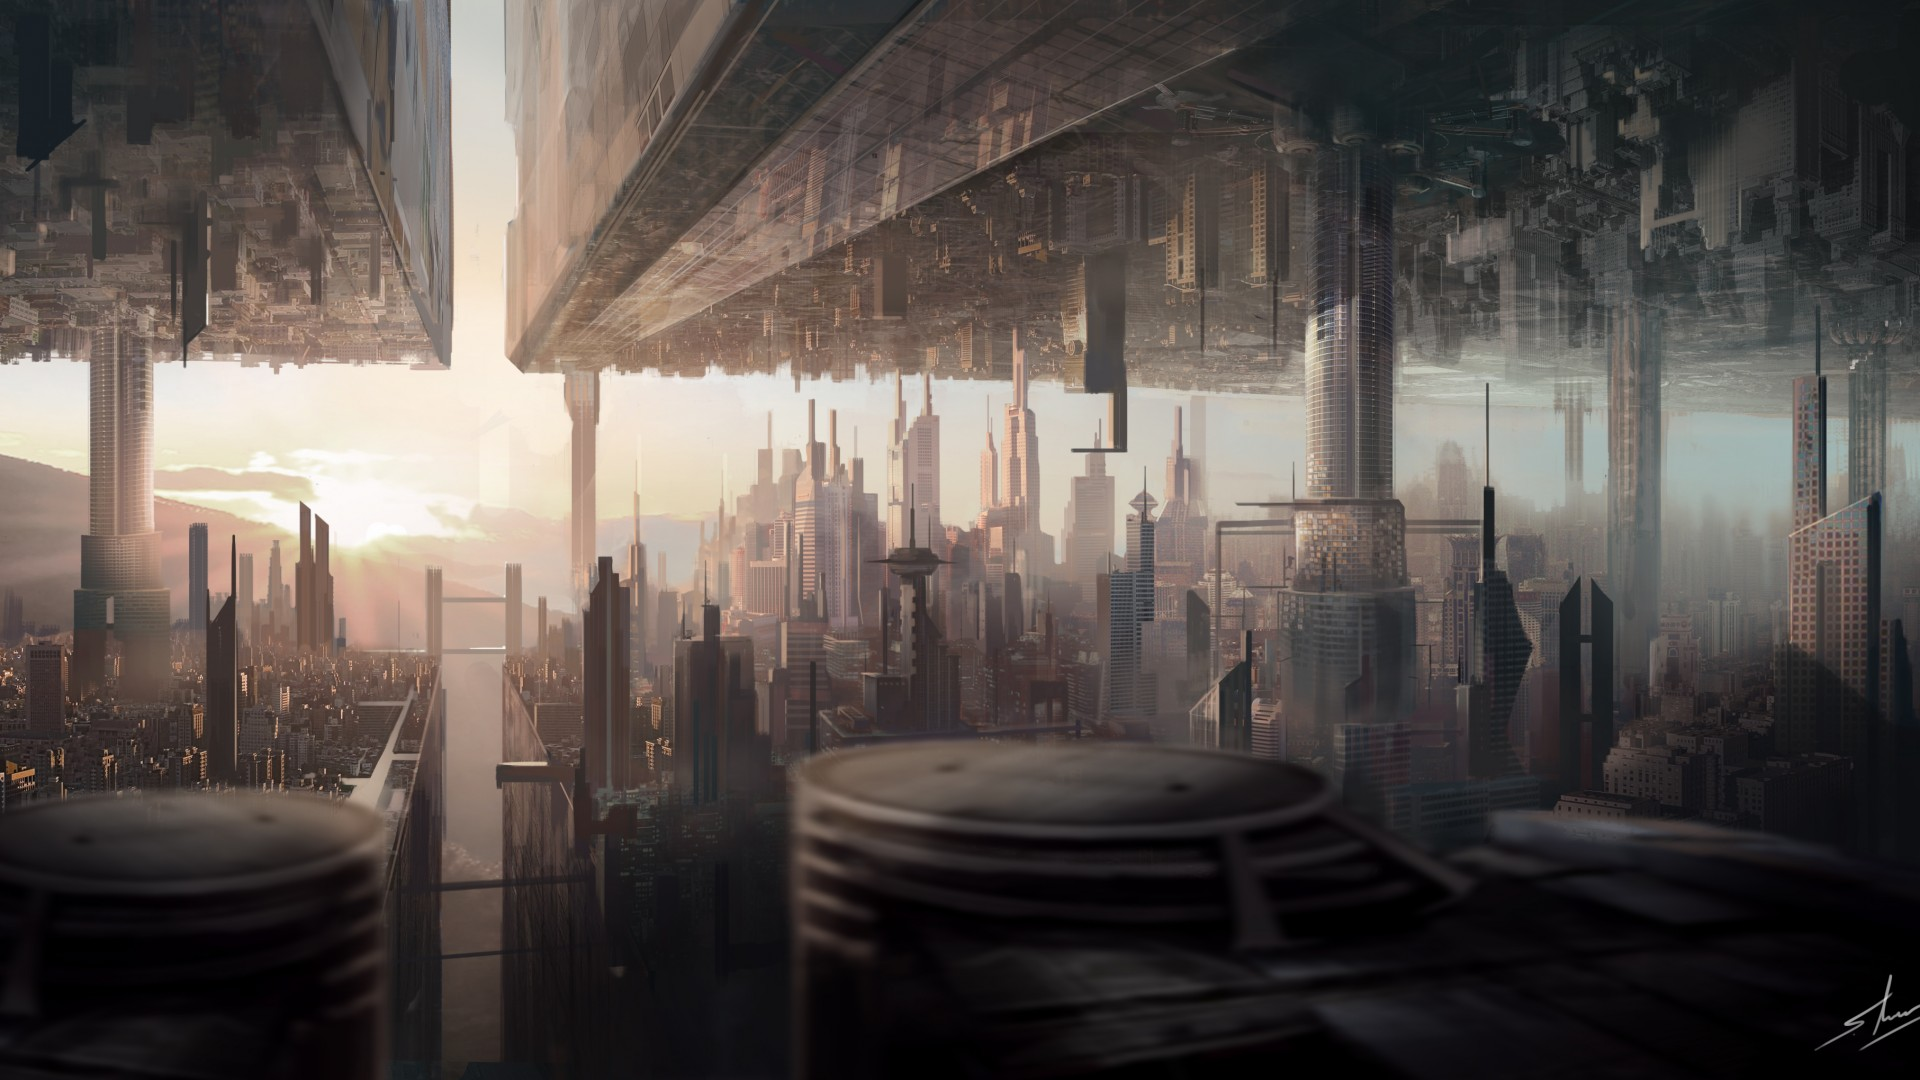 , matte painting, art, city, urban, futuristic, sci-fi, sunset (horizontal)